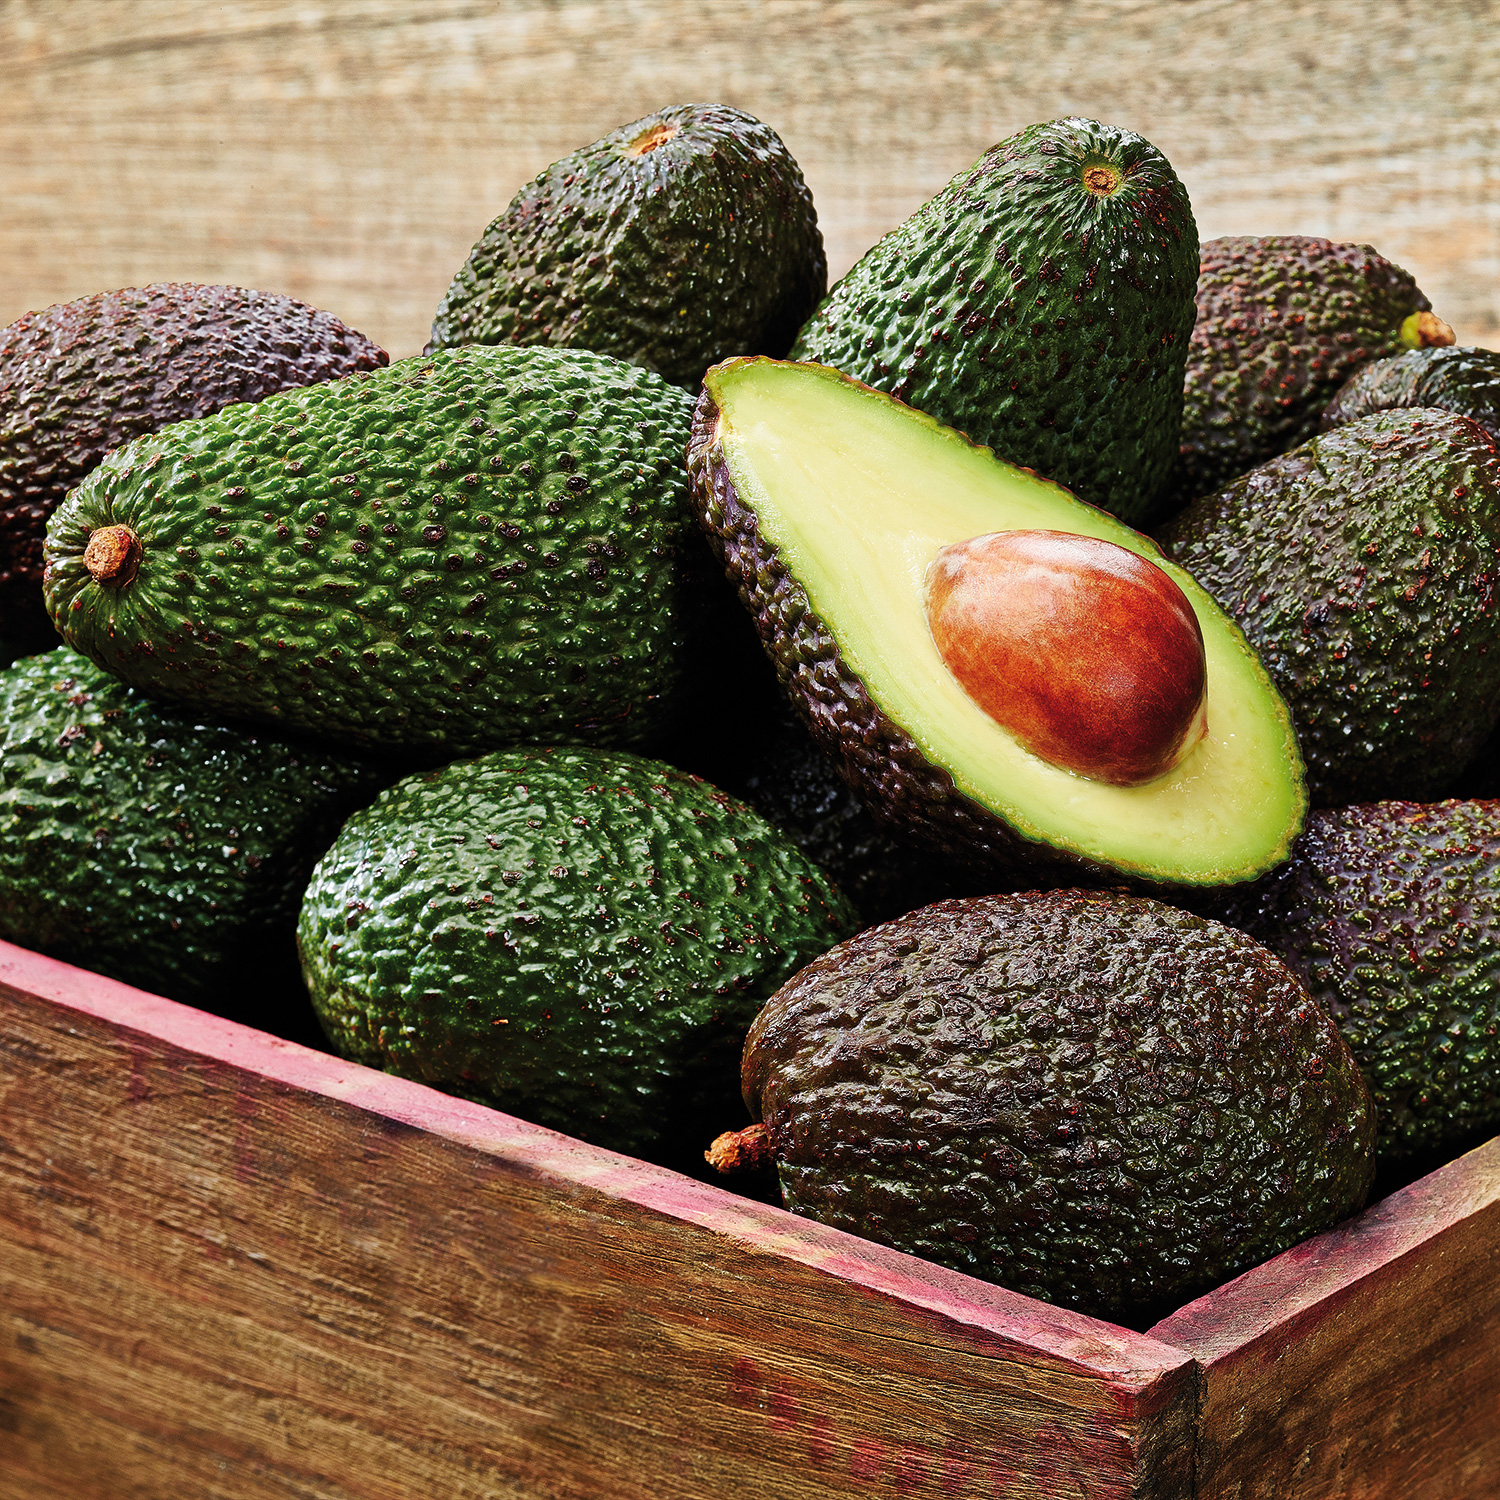 Aguacate Hass a granel Carrefour - Carrefour supermercado compra online